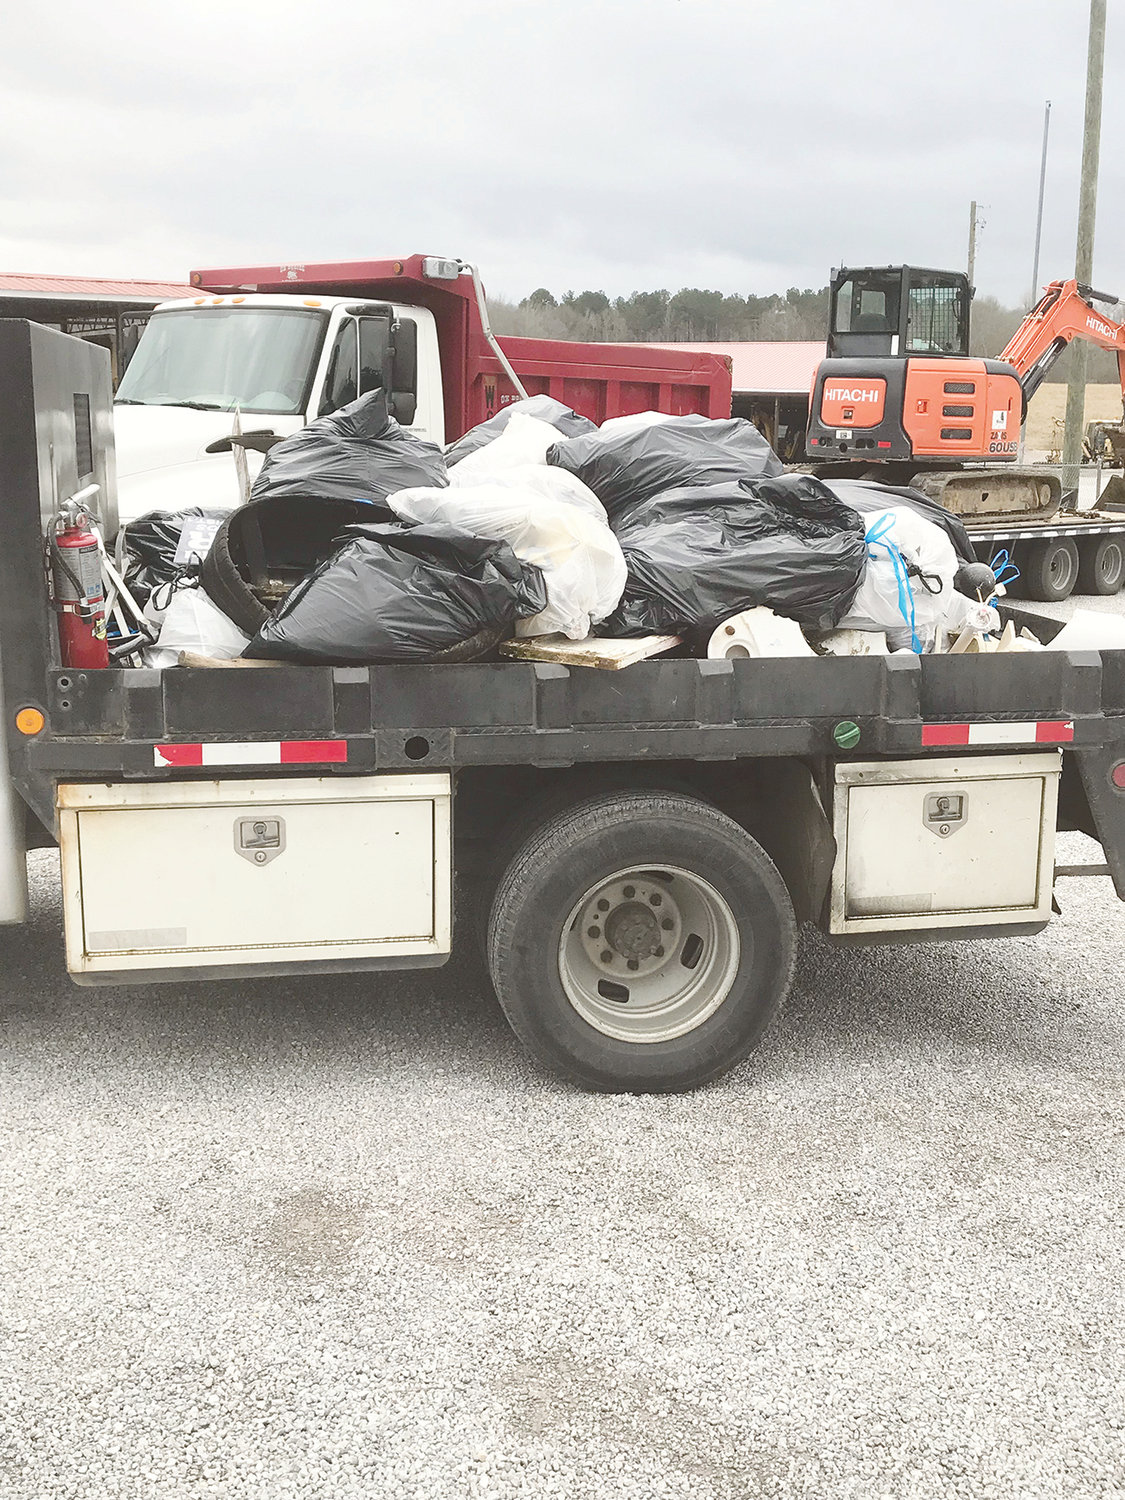 District 1 Walker County Commissioner Keith Davis provided this photo last week, showing how much litter was picked up by one of his district trucks in one day. Efforts are underway for the annual county litter cleanup in April.